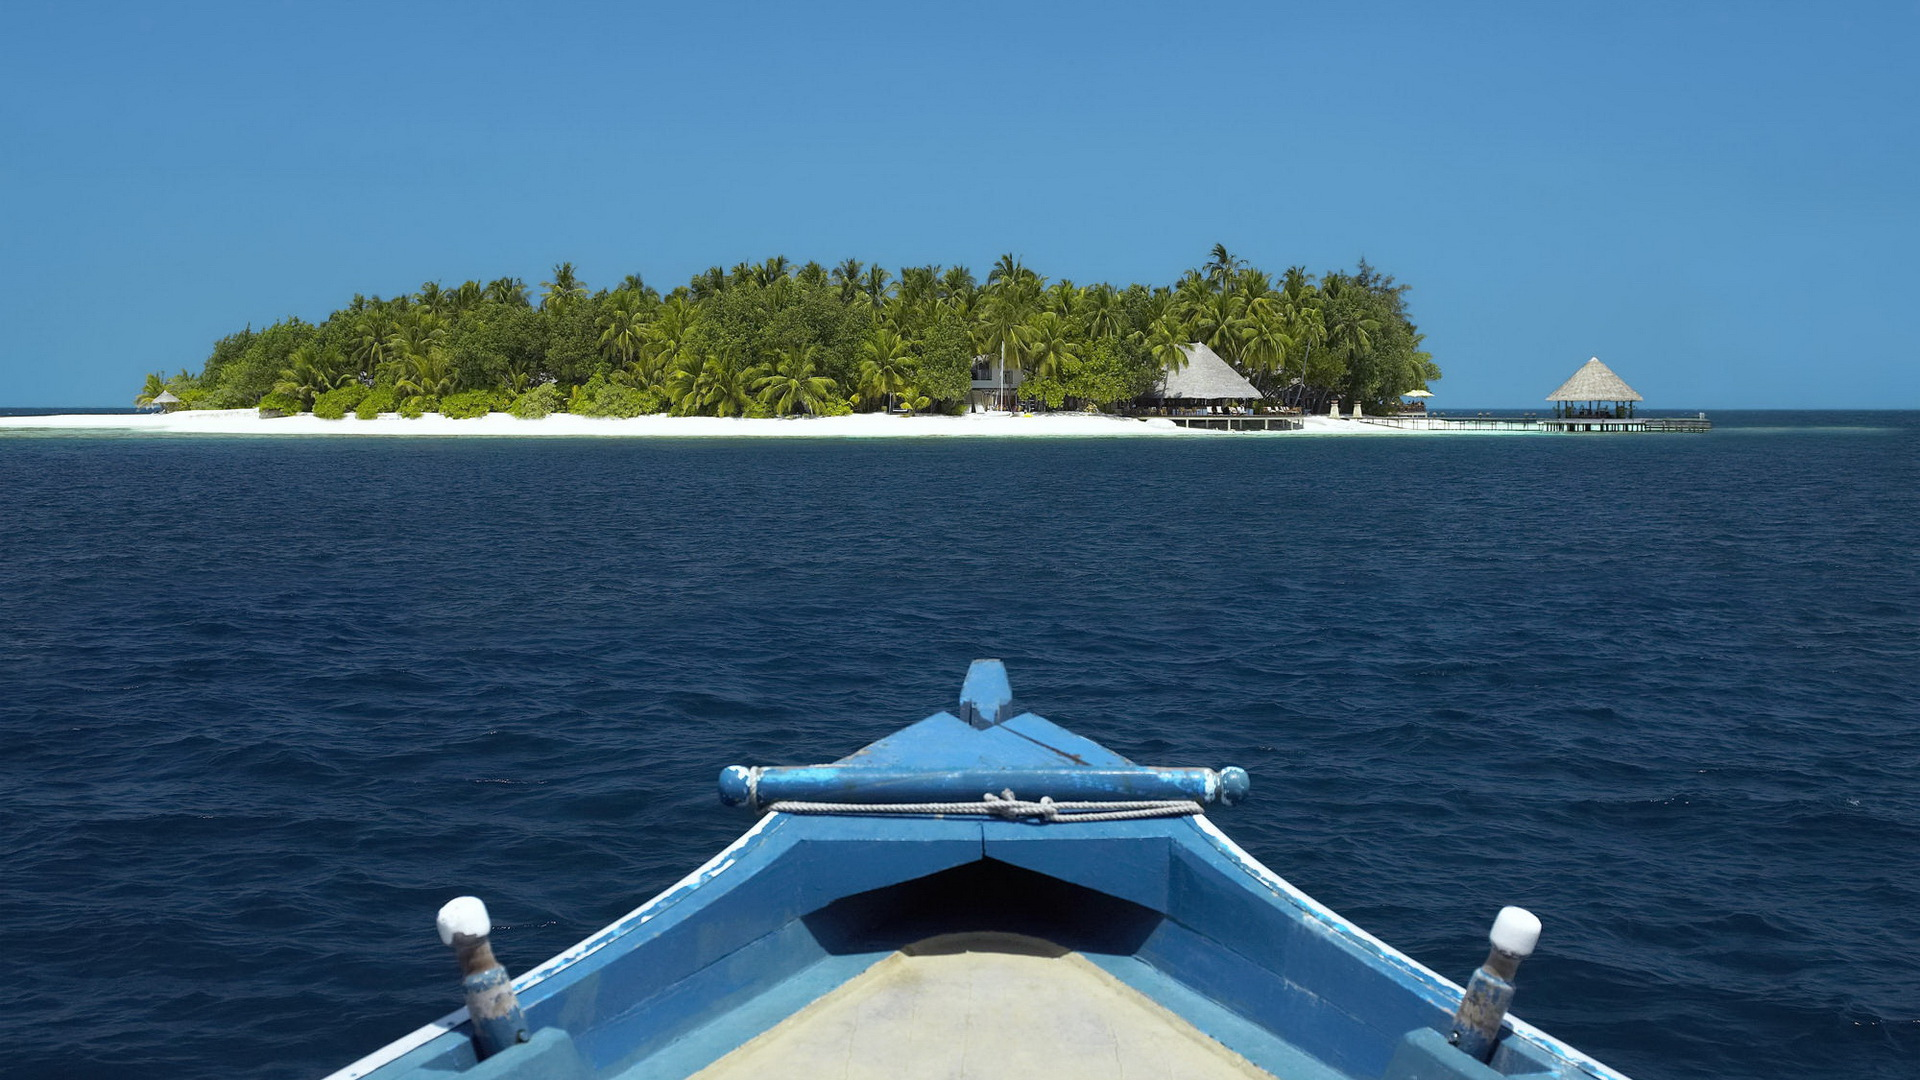 View from boat of tropical island